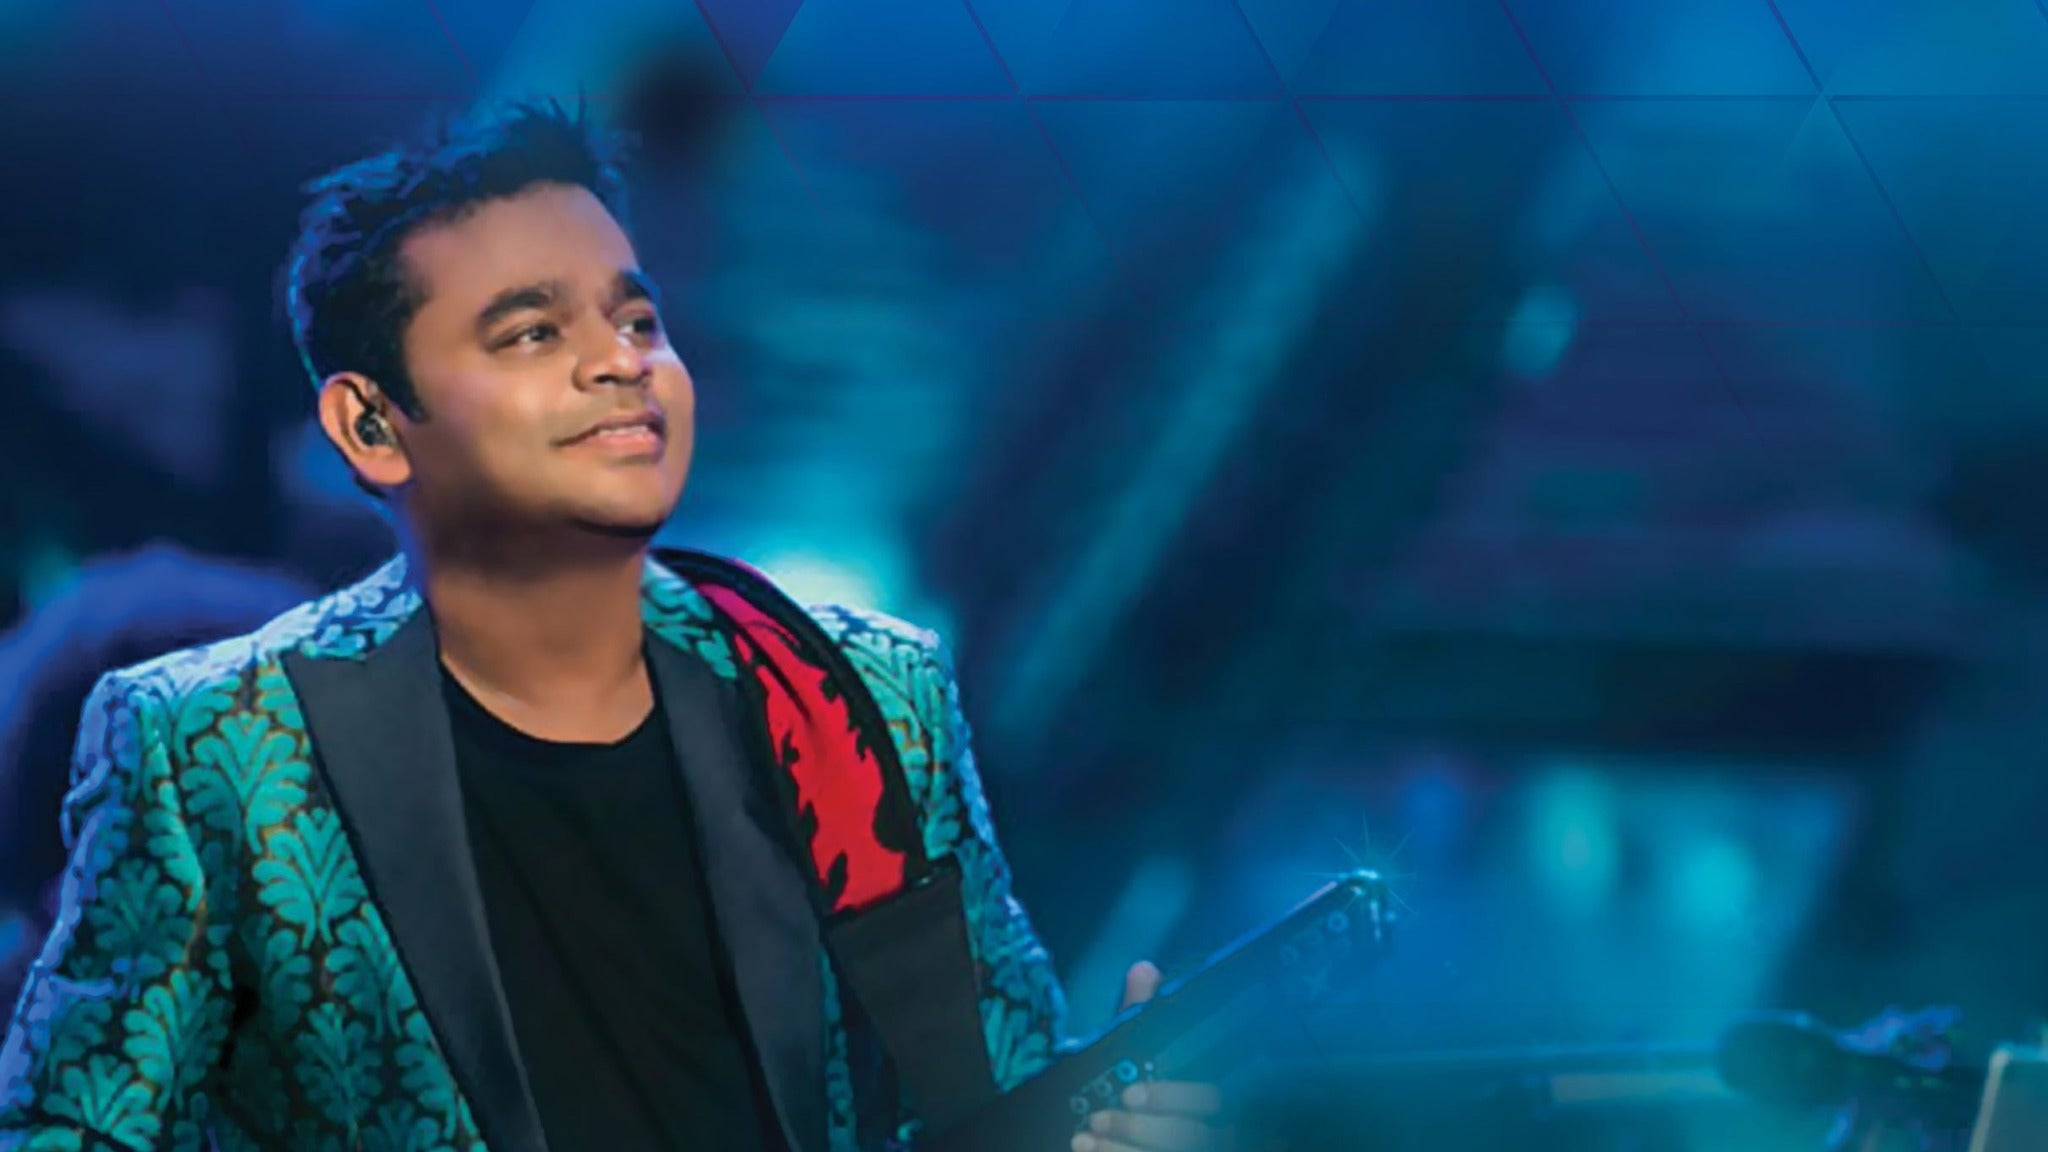 A.R. Rahman at Oracle Arena